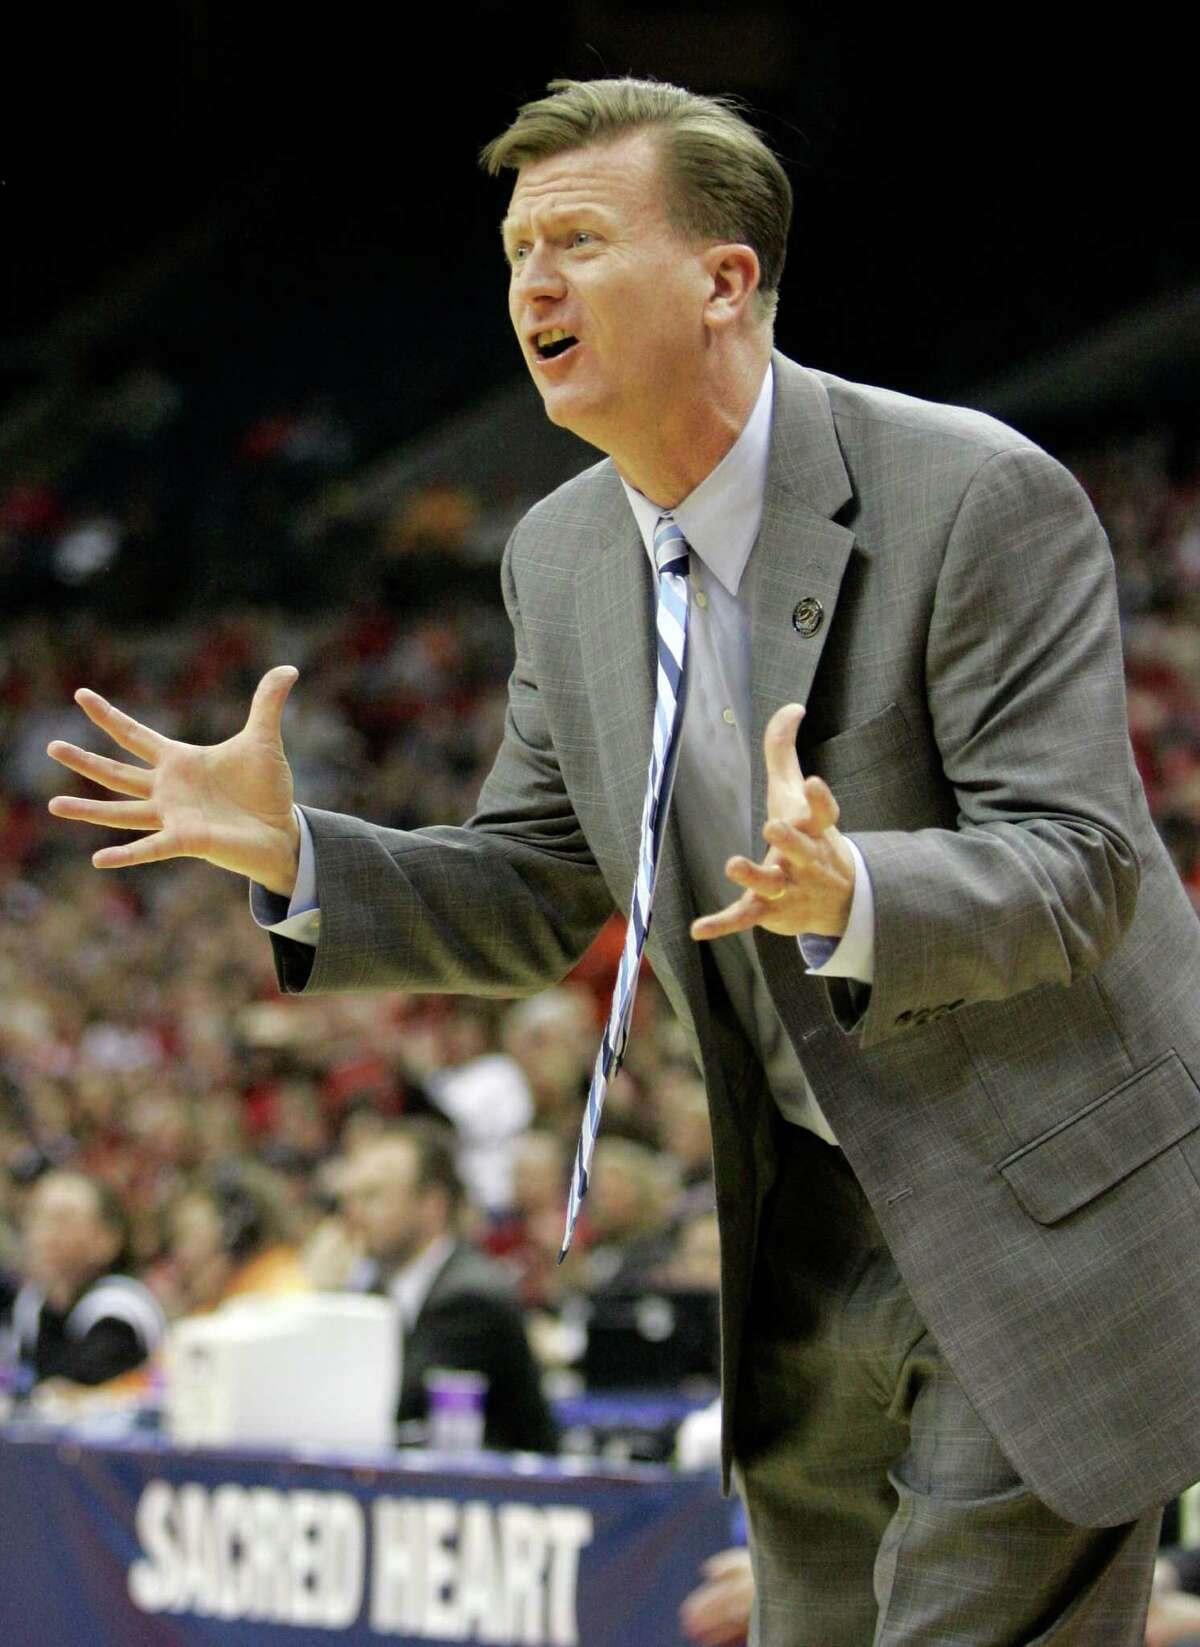 Sacred Heart coach Ed Swanson directs his team during a first-round women's NCAA college basketball tournament game against Ohio State Saturday, March 21, 2009 in Columbus, Ohio. (AP Photo/Kiichiro Sato)